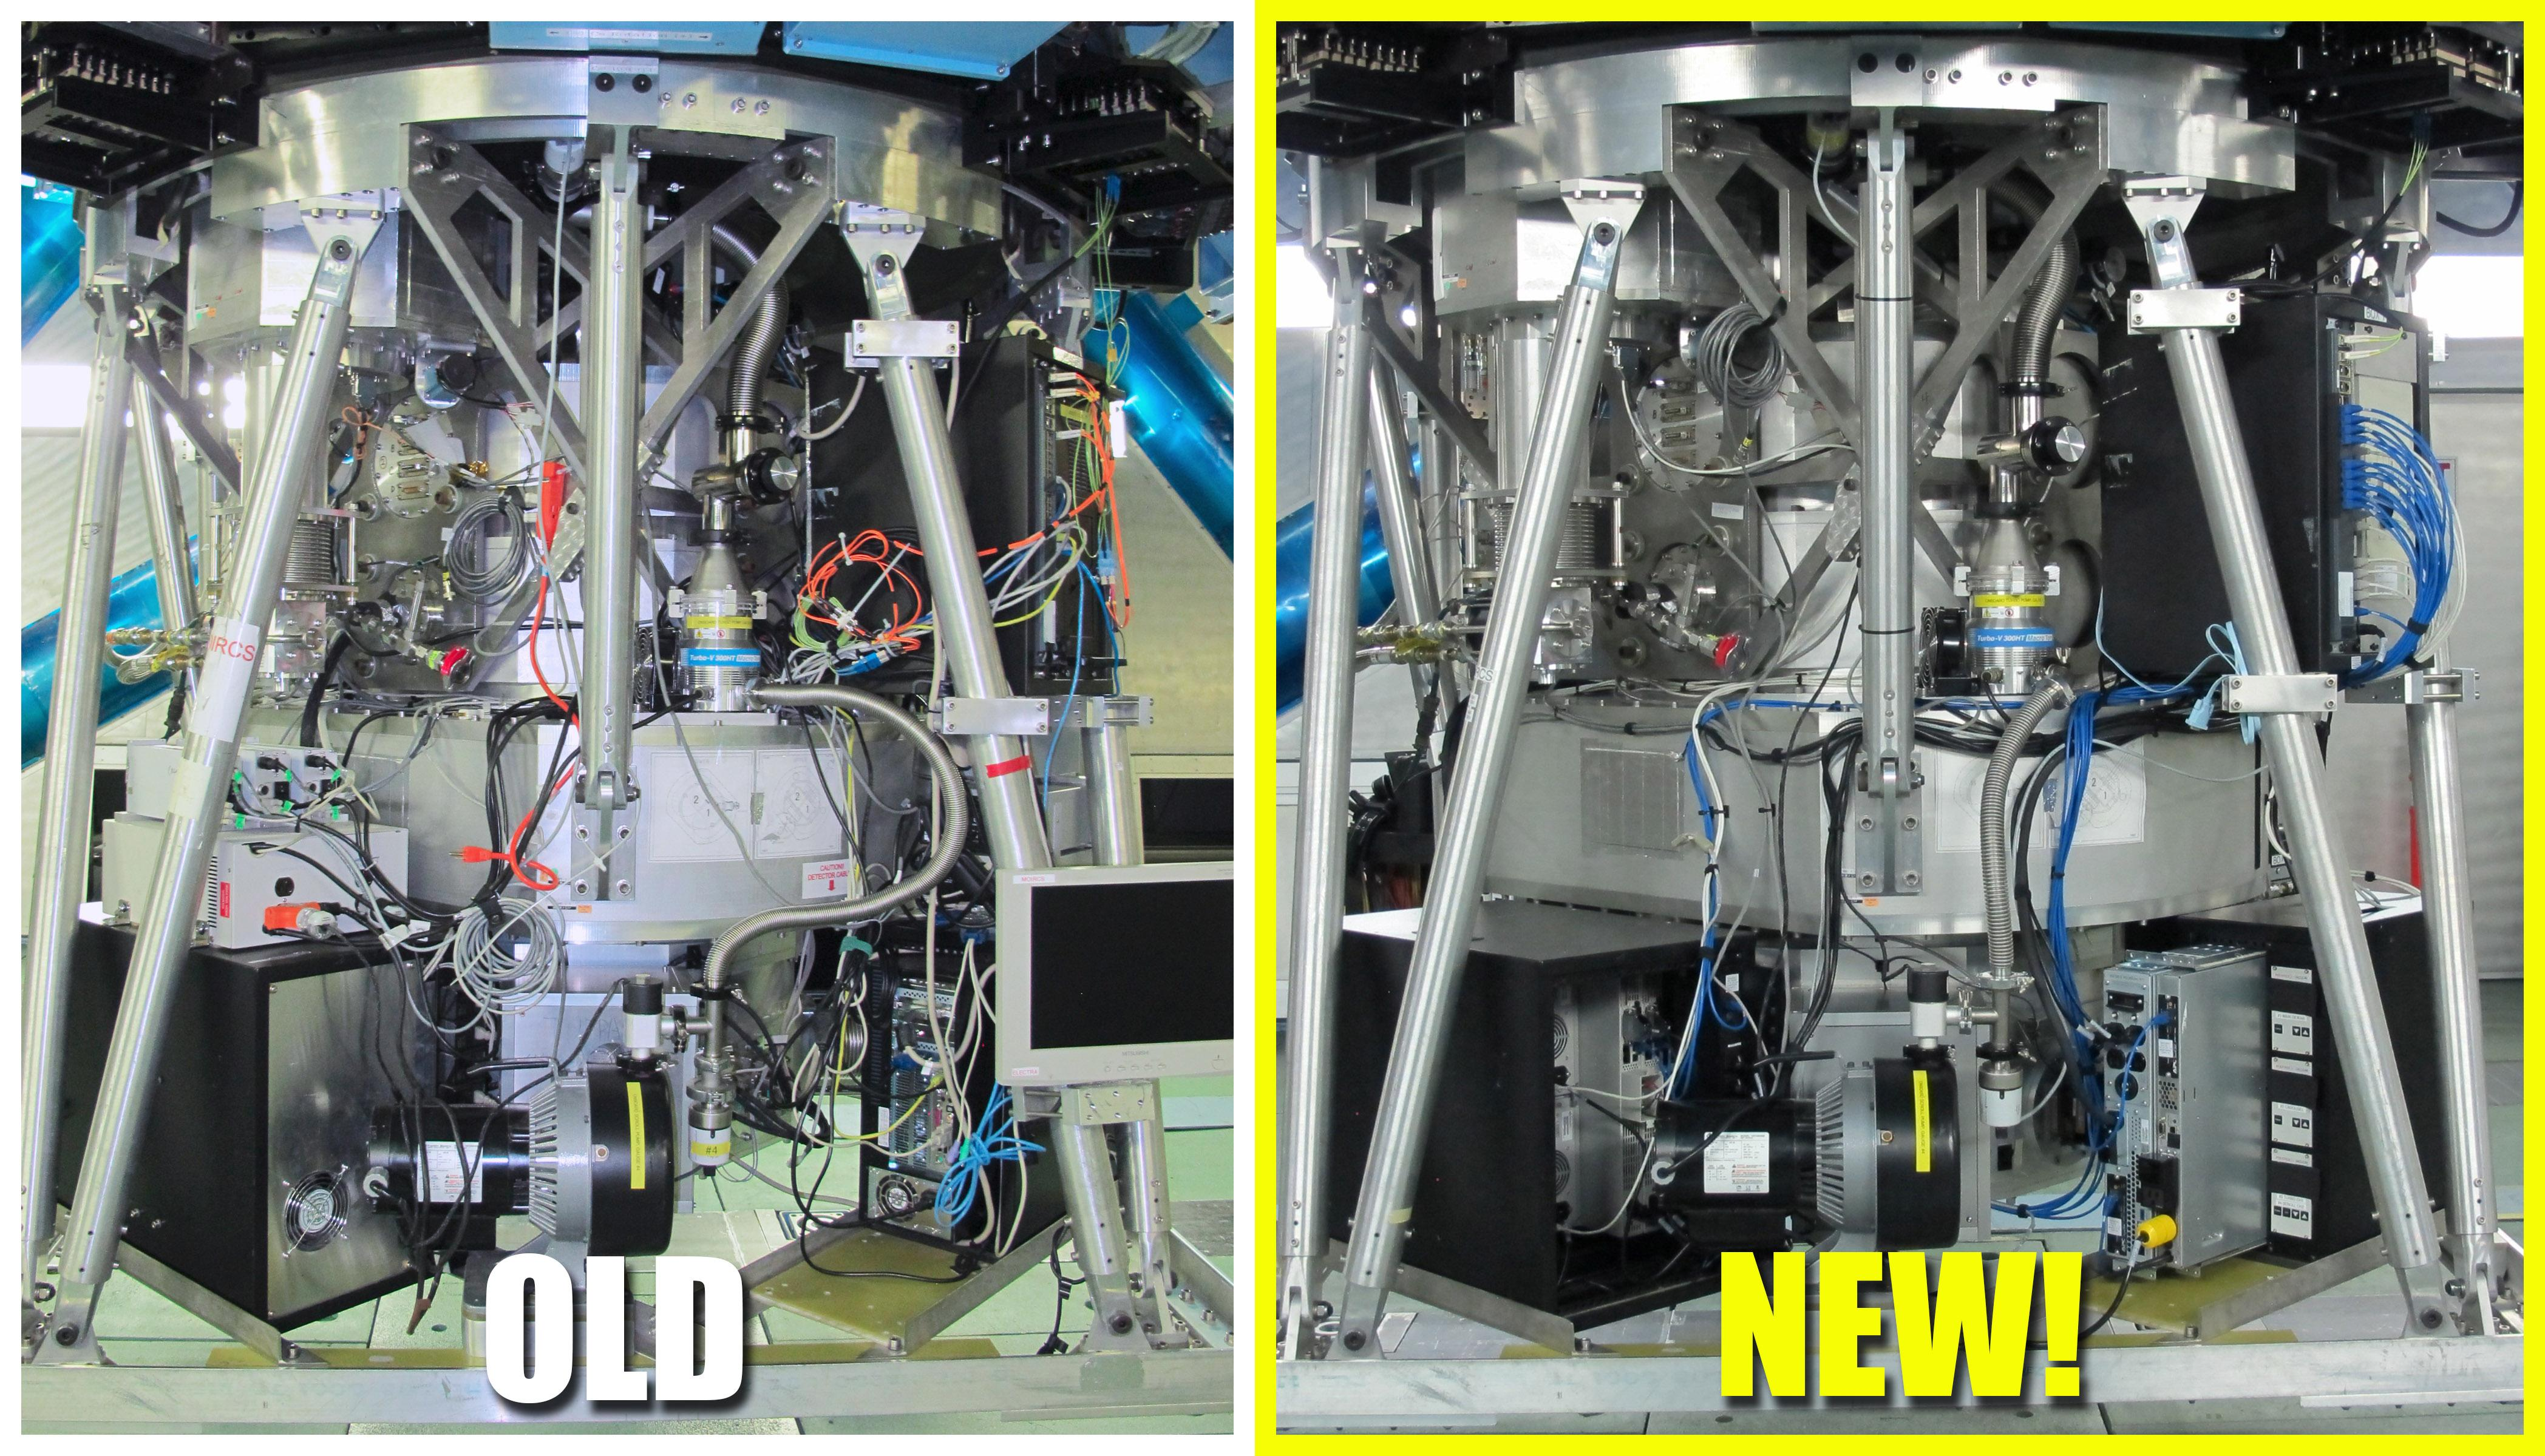 Upgraded MOIRCS Instrument Achieves New Year's Resolution - Better Images Figure4